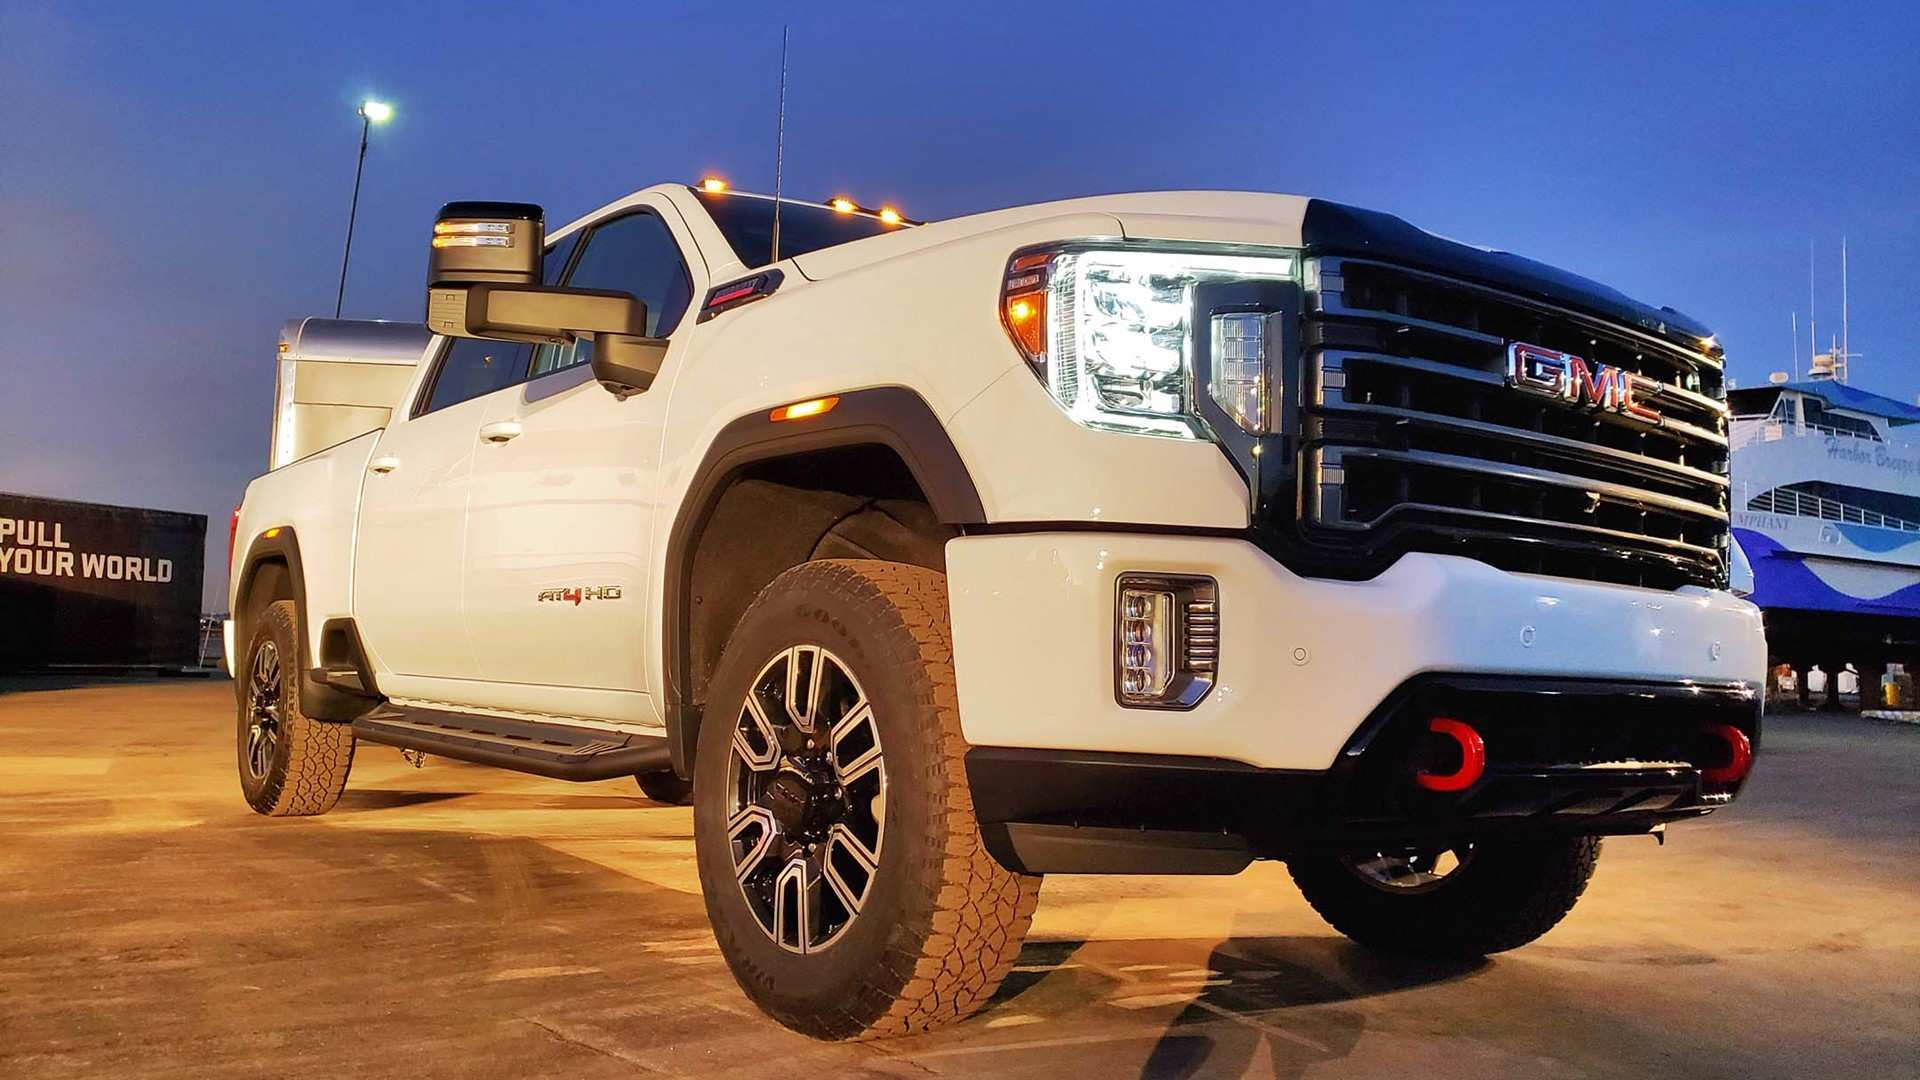 77 Concept of 2020 Gmc 3500 Gas Engine Redesign with 2020 Gmc 3500 Gas Engine